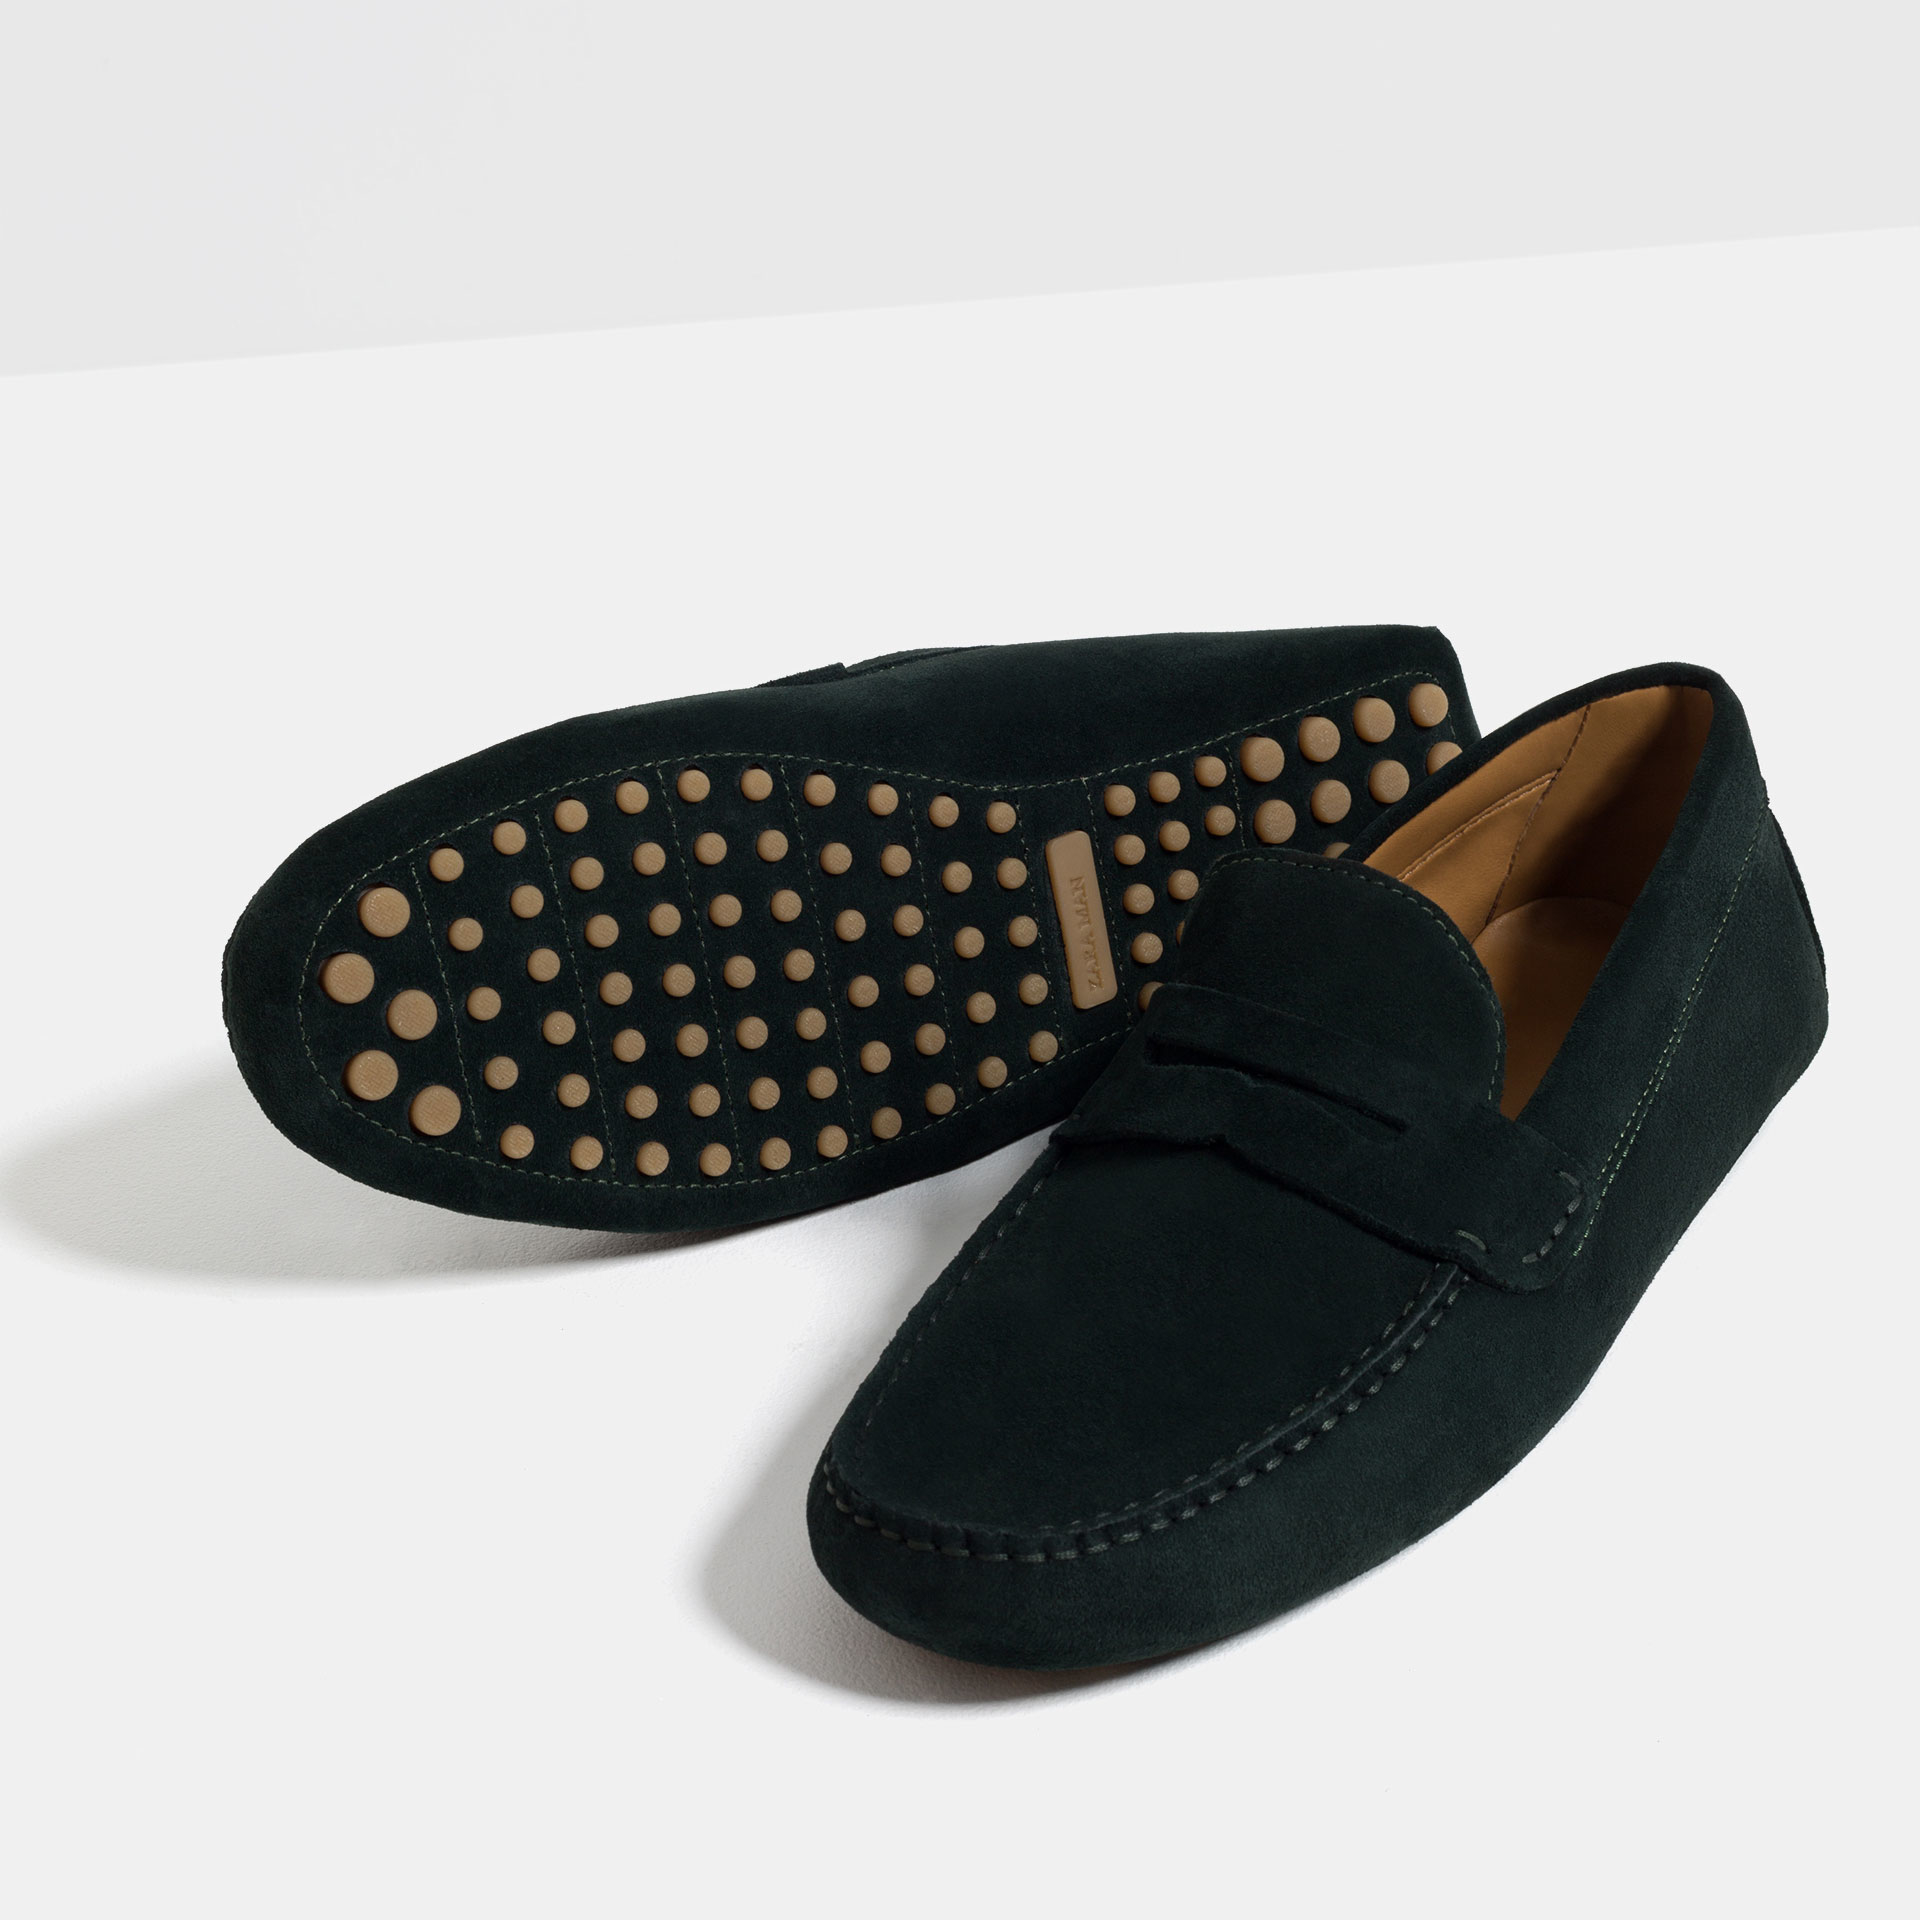 Experience for yourself an American heritage of innovation and classic style with a pair of women's leather shoes, loafers, or flats from G.H. Bass & Co.